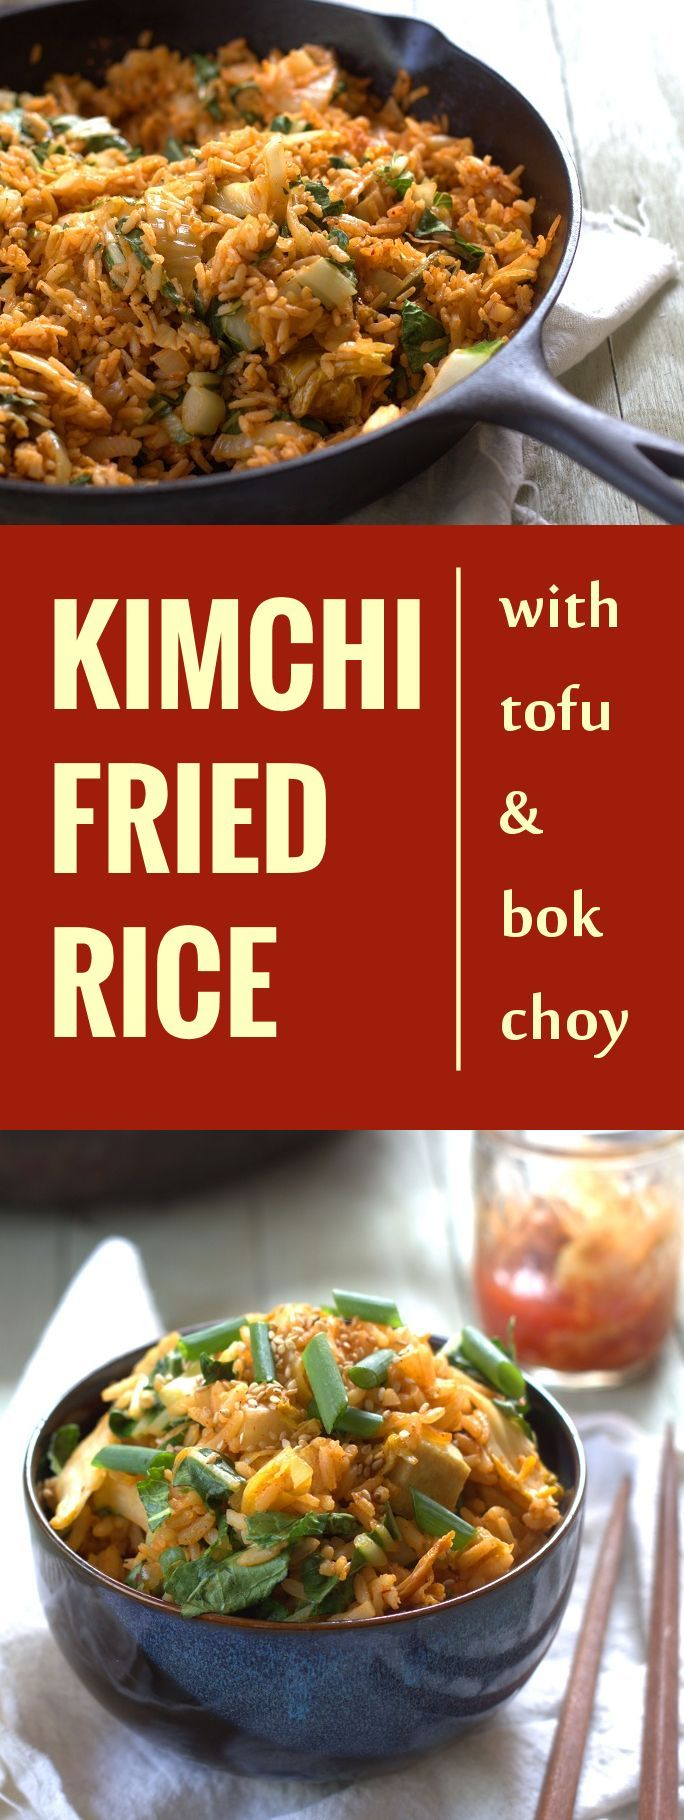 Kimchi Fried Rice with Bok Choy and Tofu